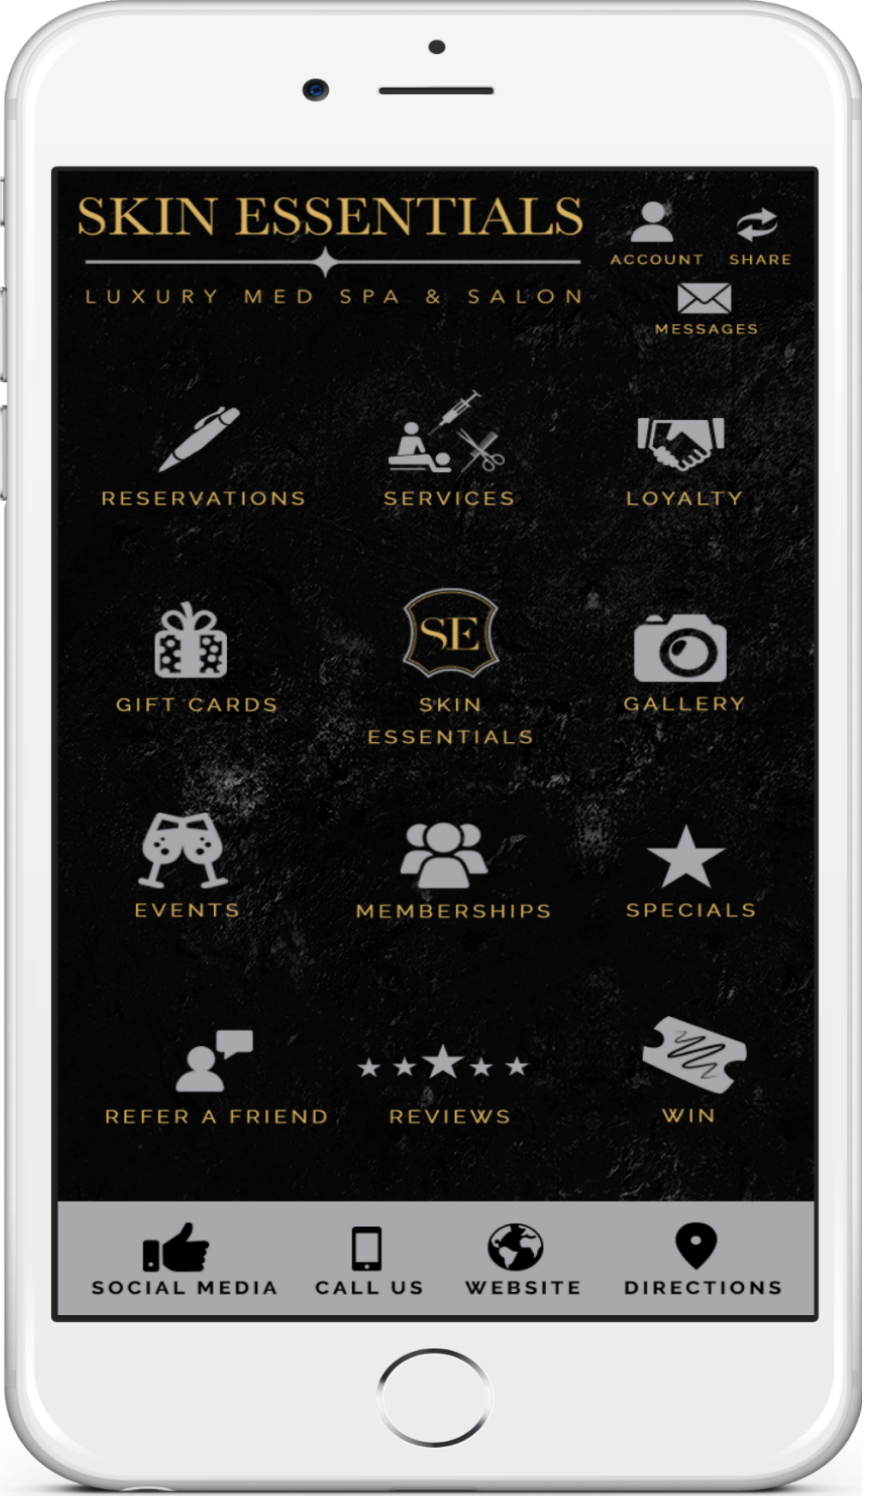 The Skin Essentials Luxury Med Spa & Salon Mobile App